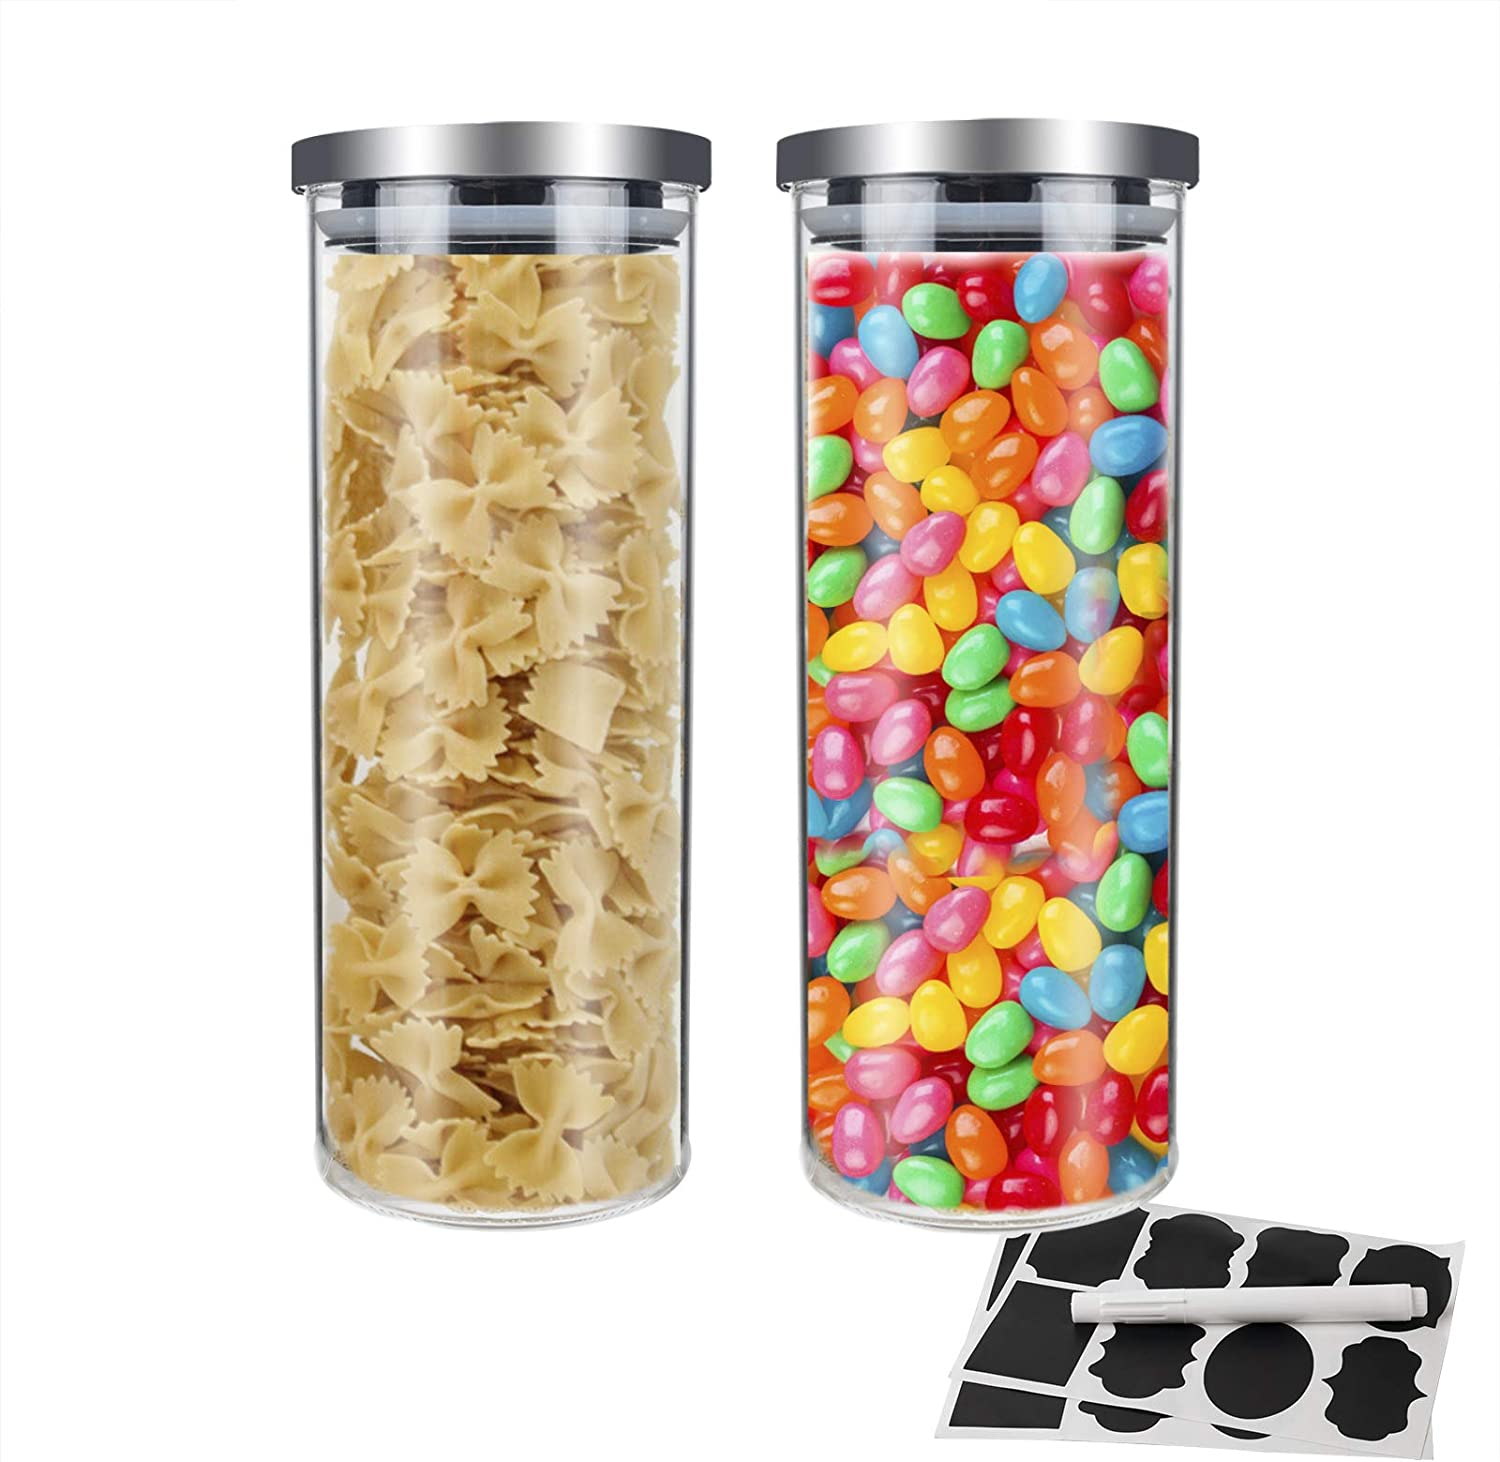 IDEALUX Set of 2 Glass Kitchen Canisters with 16PCS Labels and Chalkboard Pen, 68 Oz Kitchen Glass Jar, Round Food Glass Storage Containers 2000ML with Airtight Stainless Steel Lids (68 OZ)